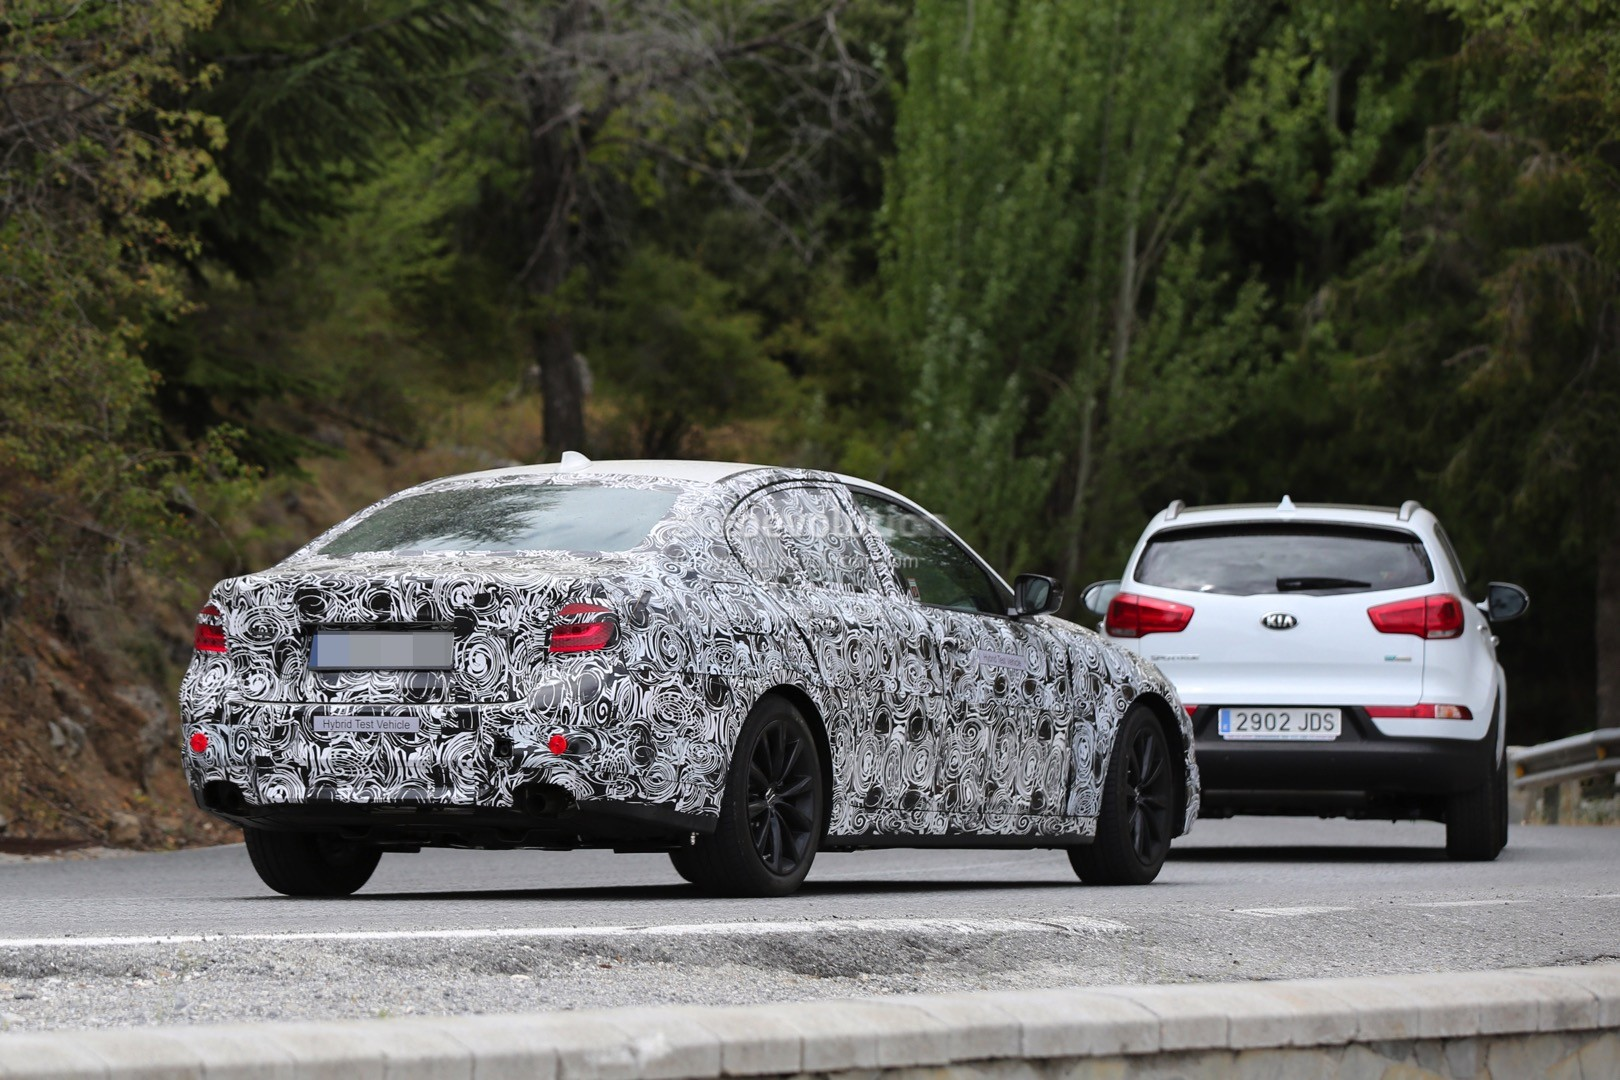 2017 bmw g30 5 series spied closer prototype interior hints at 7 series autoevolution. Black Bedroom Furniture Sets. Home Design Ideas